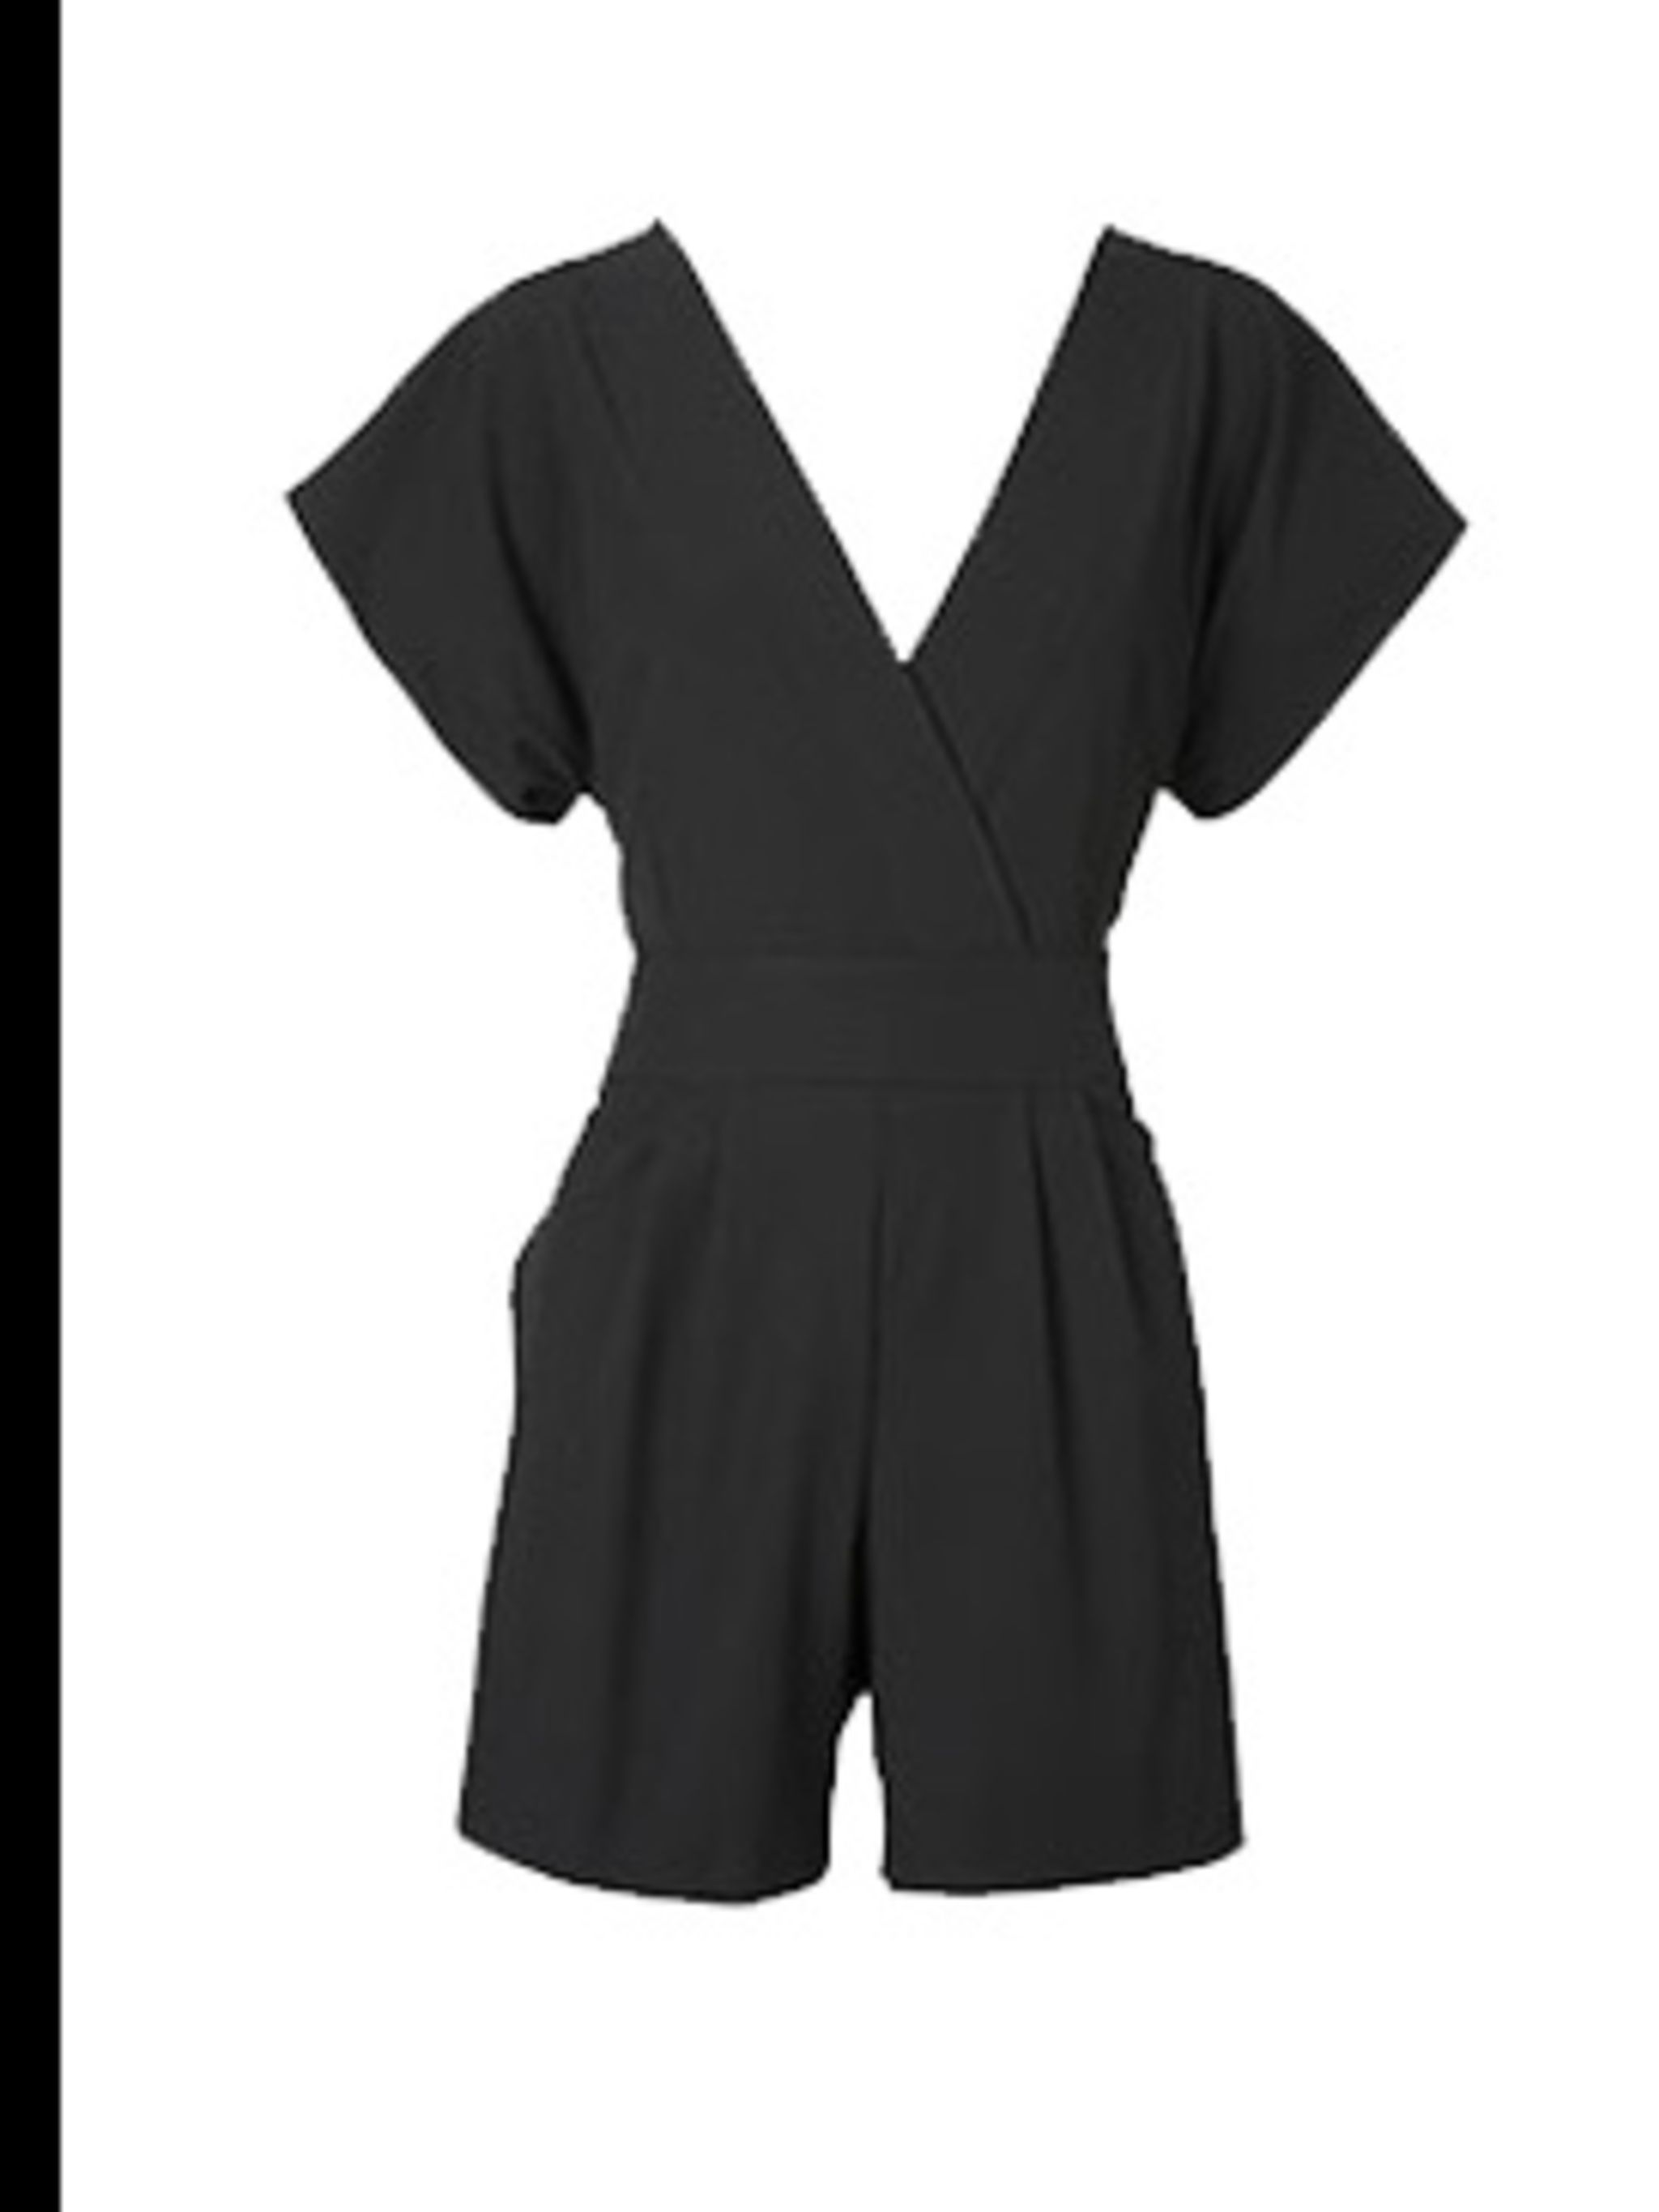 "<p>Black playsuit, £65, by <a href=""http://www.oasis-stores.com/fcp/product/Oasis//Kimono-Jumpsuit/3420002101"">Oasis</a></p>"